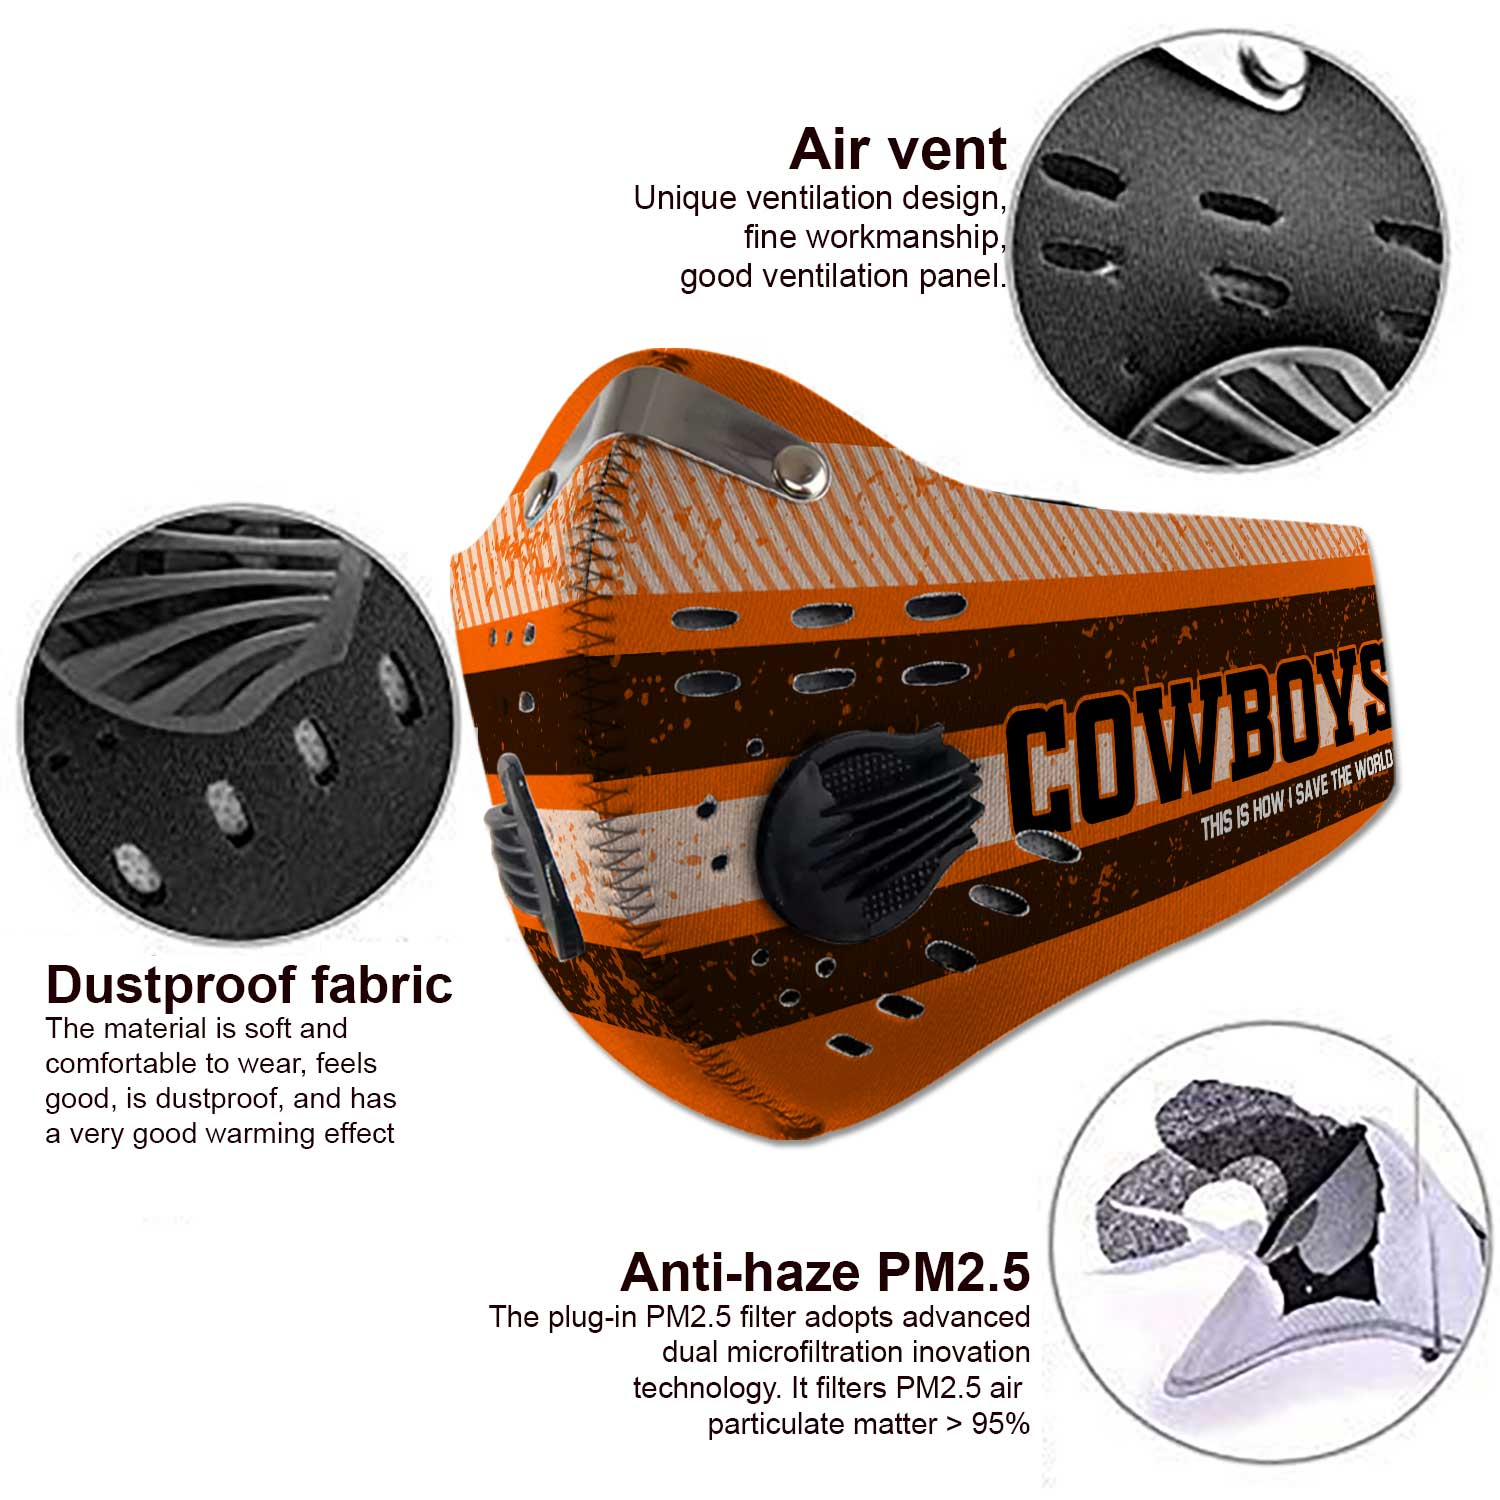 Oklahoma state cowboys this is how i save the world face mask 3